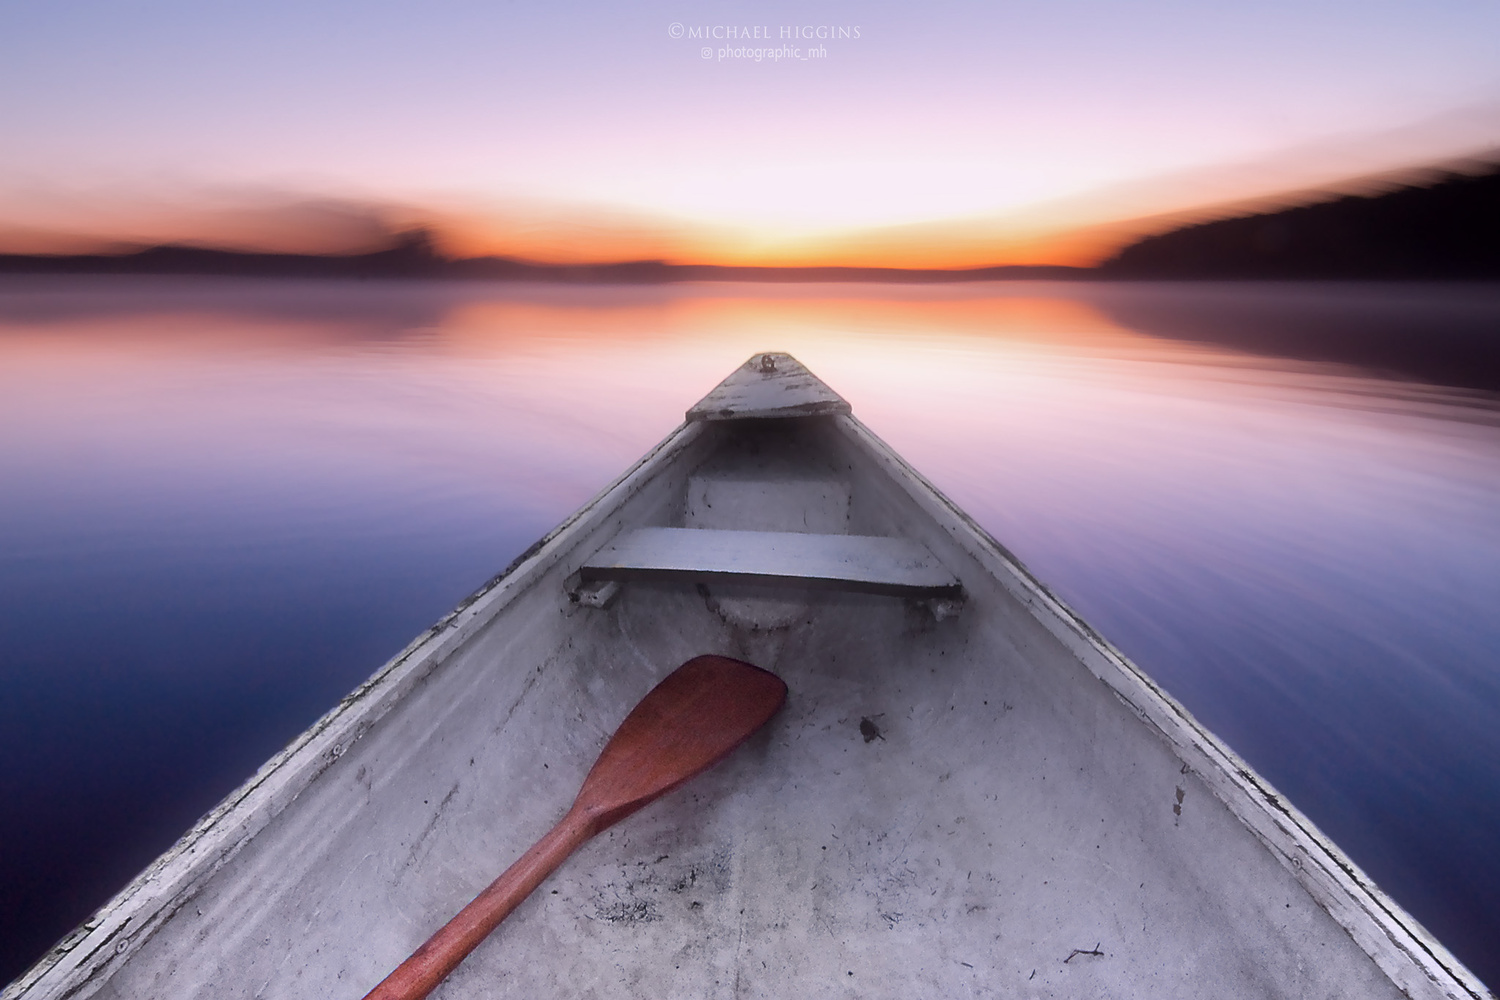 Drifting in an old, crooked canoe by Michael Higgins